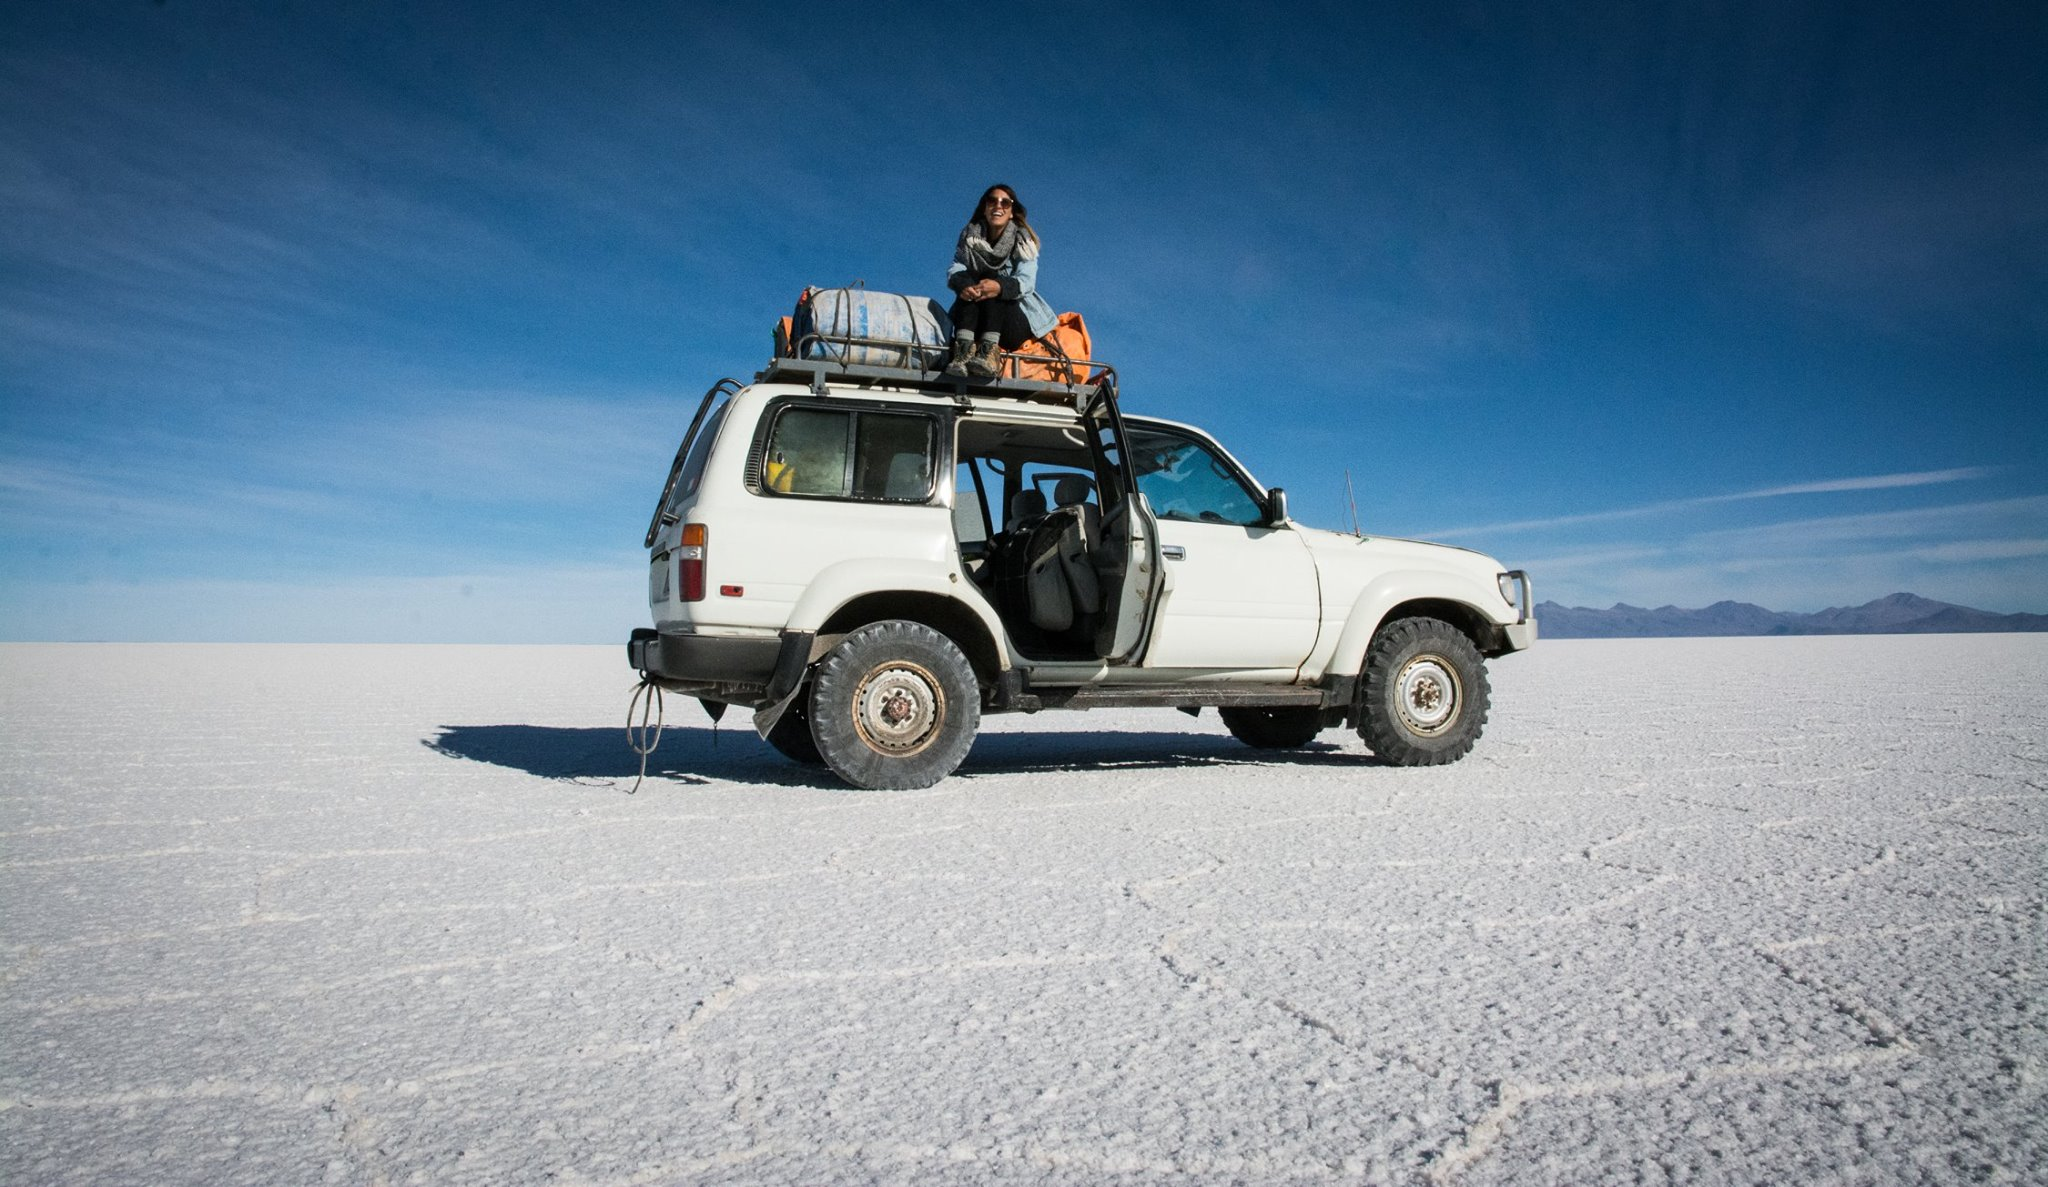 Alana Nason on a long road expedition in South America